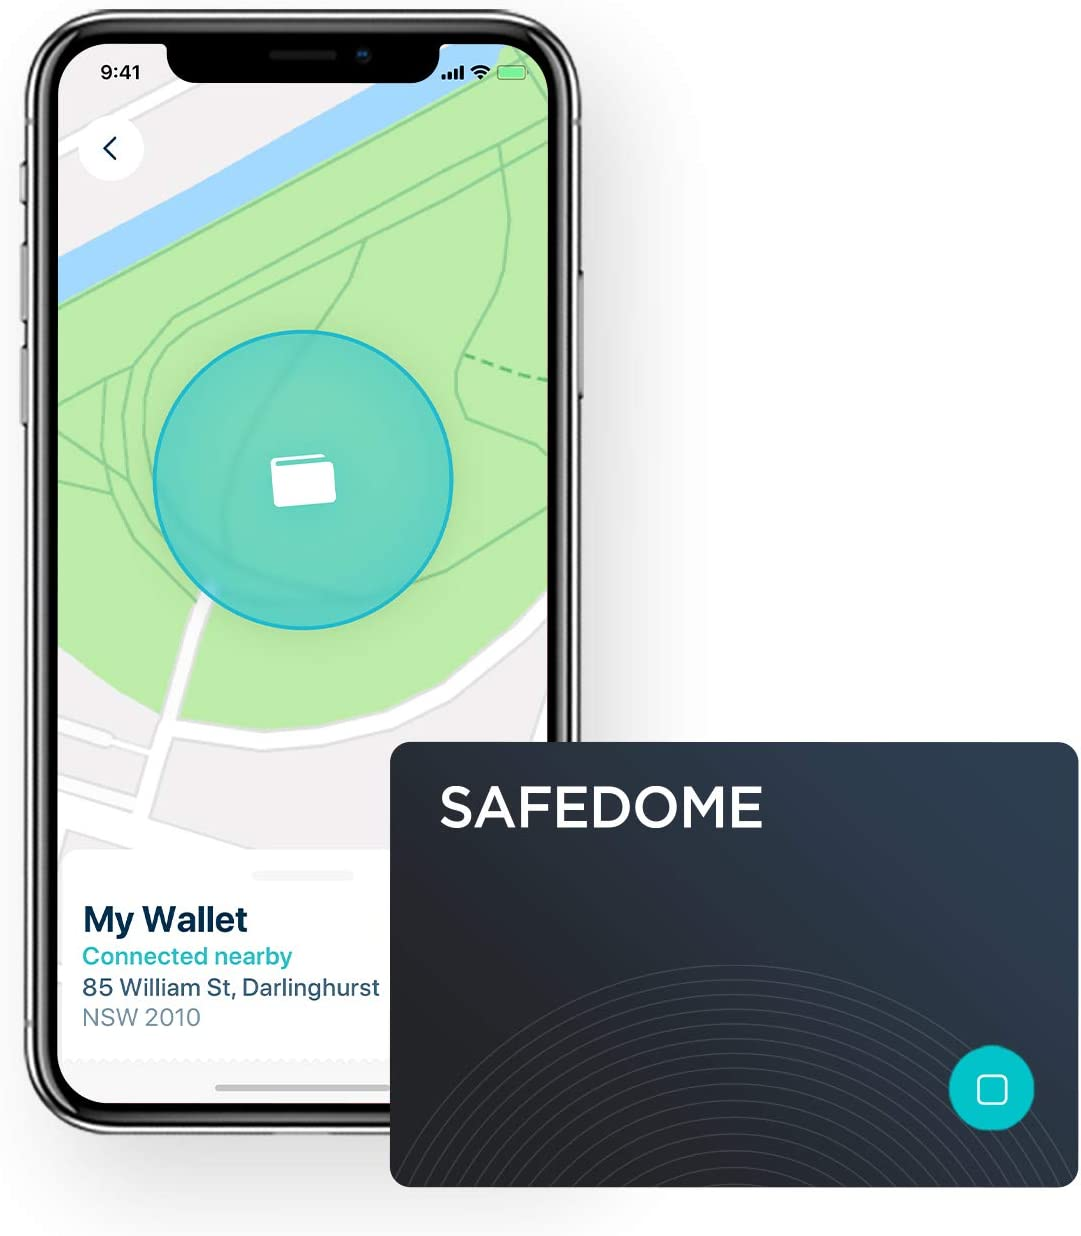 Safedome Classic Bluetooth Lost Item Tracker Card, Water-Resistant Item Finder with GPS-Like Tracking, World's Thinnest Bluetooth Card Fits Any Wallet